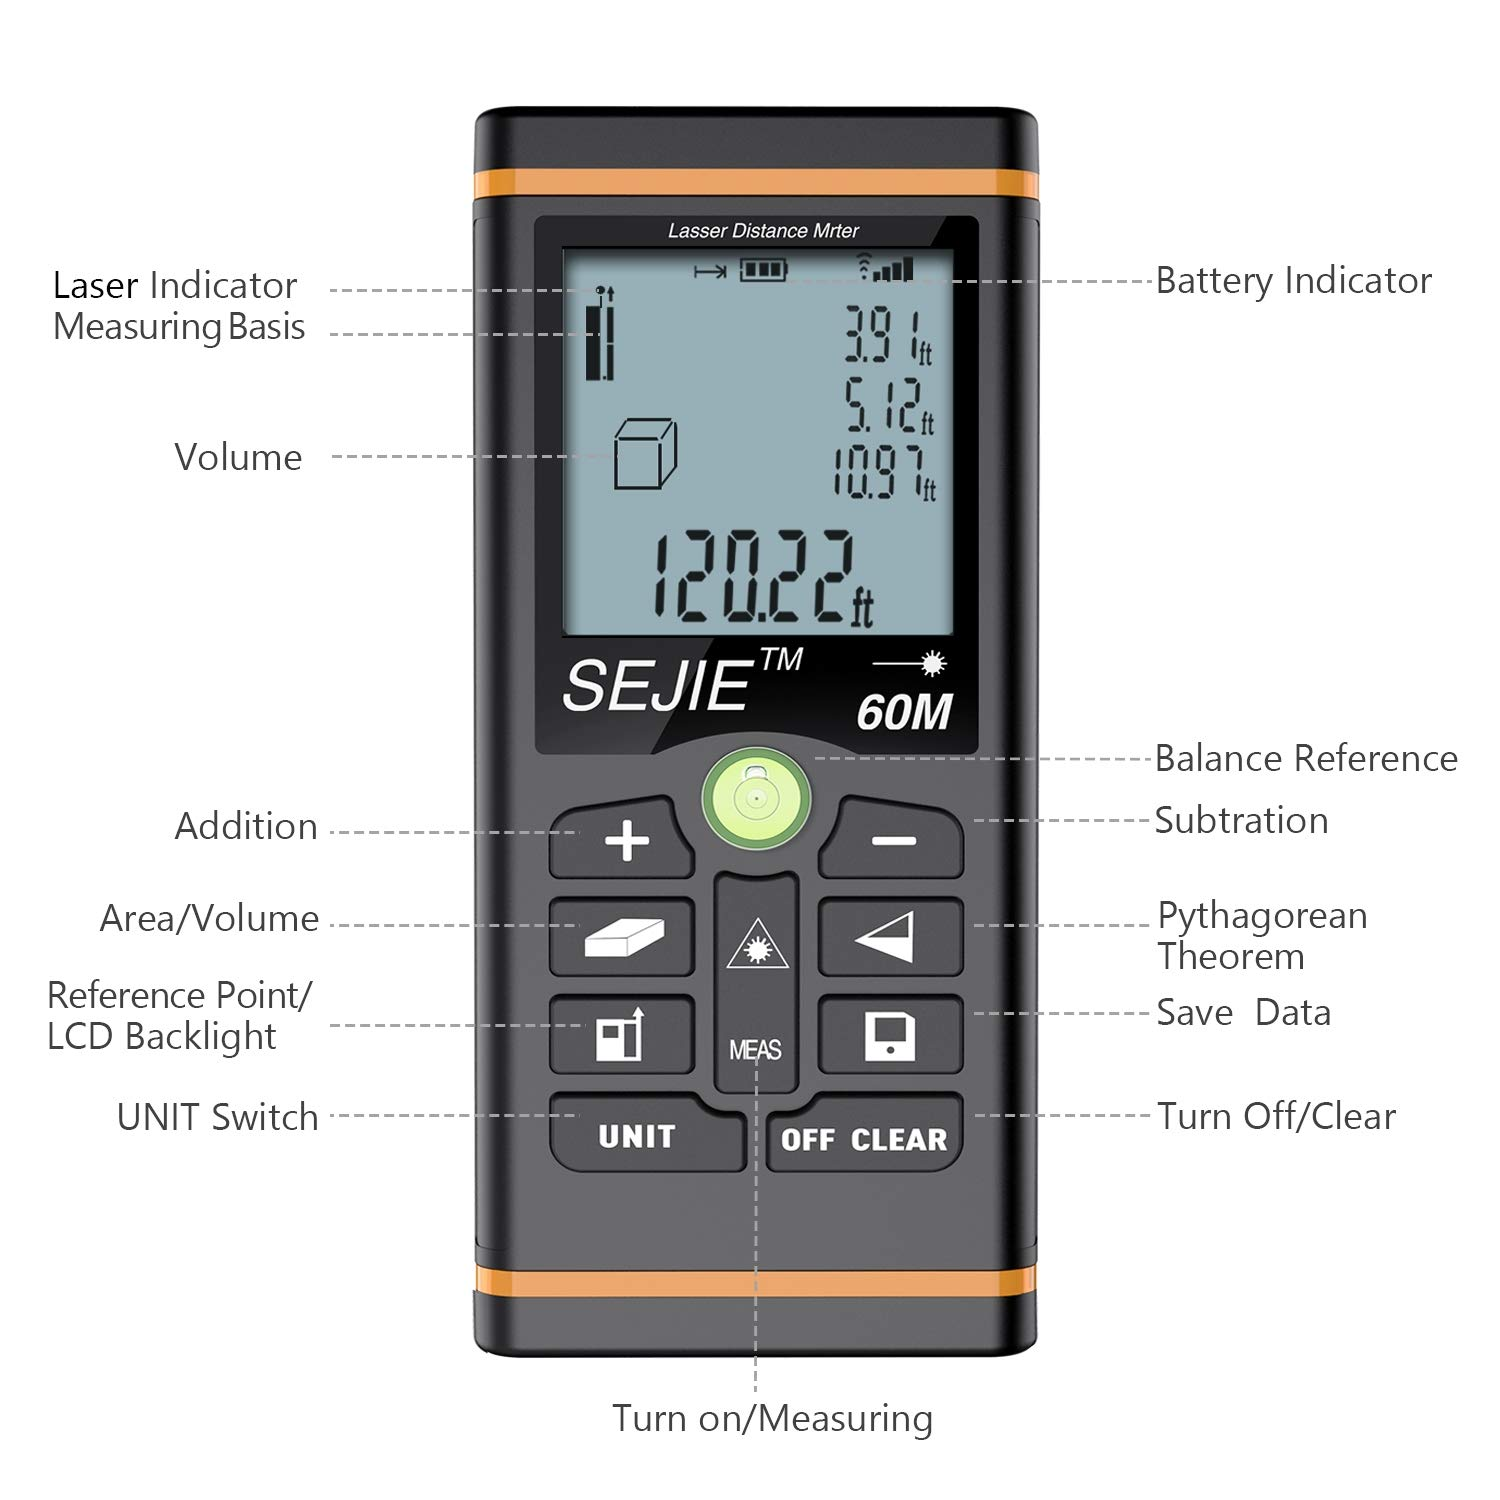 Laser Measure, ESYWEN Digital Laser Distance Meter 196ft Laser Tape Measure with Large LCD Backlight Display and Pythagorean Mode, Measure Distance/Area/Volume by ESYWEN (Image #7)